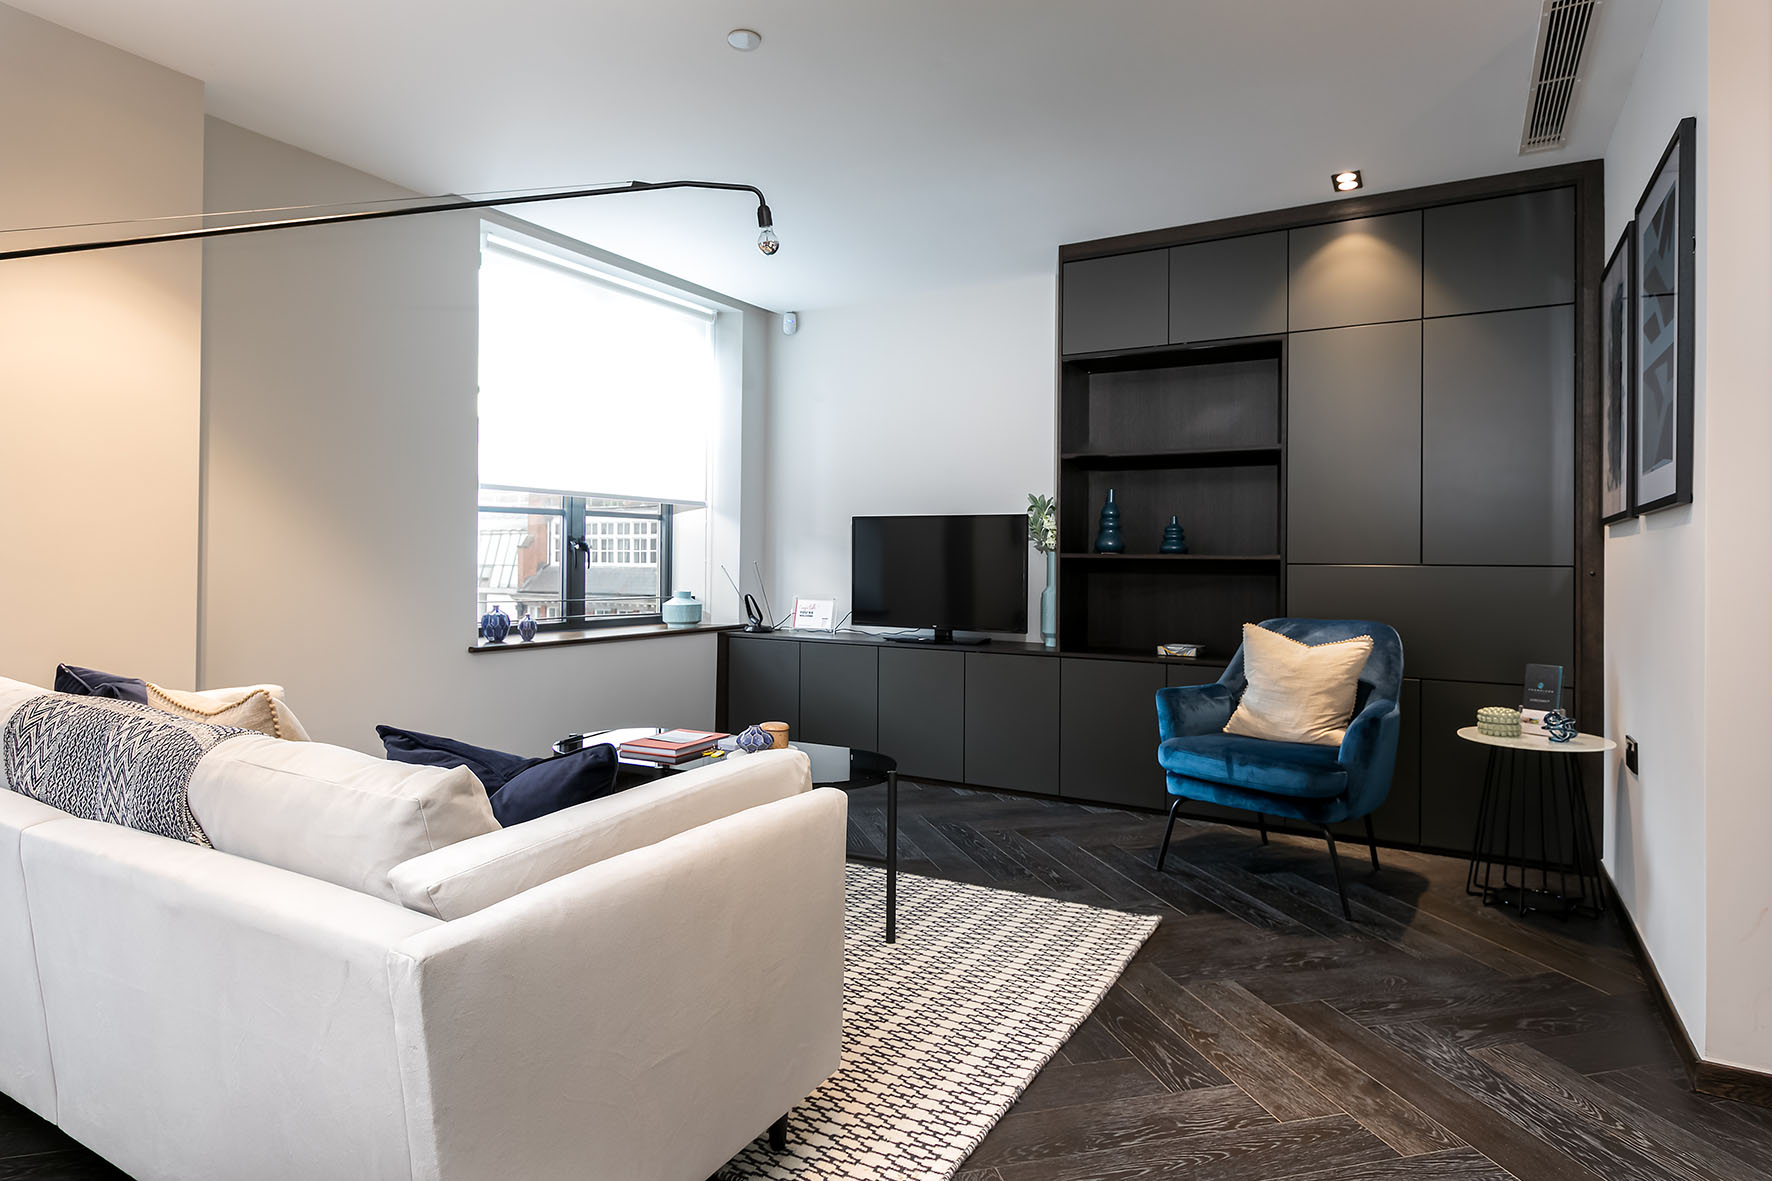 Lovelydays luxury service apartment rental - London - Soho - Noel Street VII - Lovelysuite - 1 bedrooms - 1 bathrooms - Luxury living room - 5c5e78d374e8 - Lovelydays